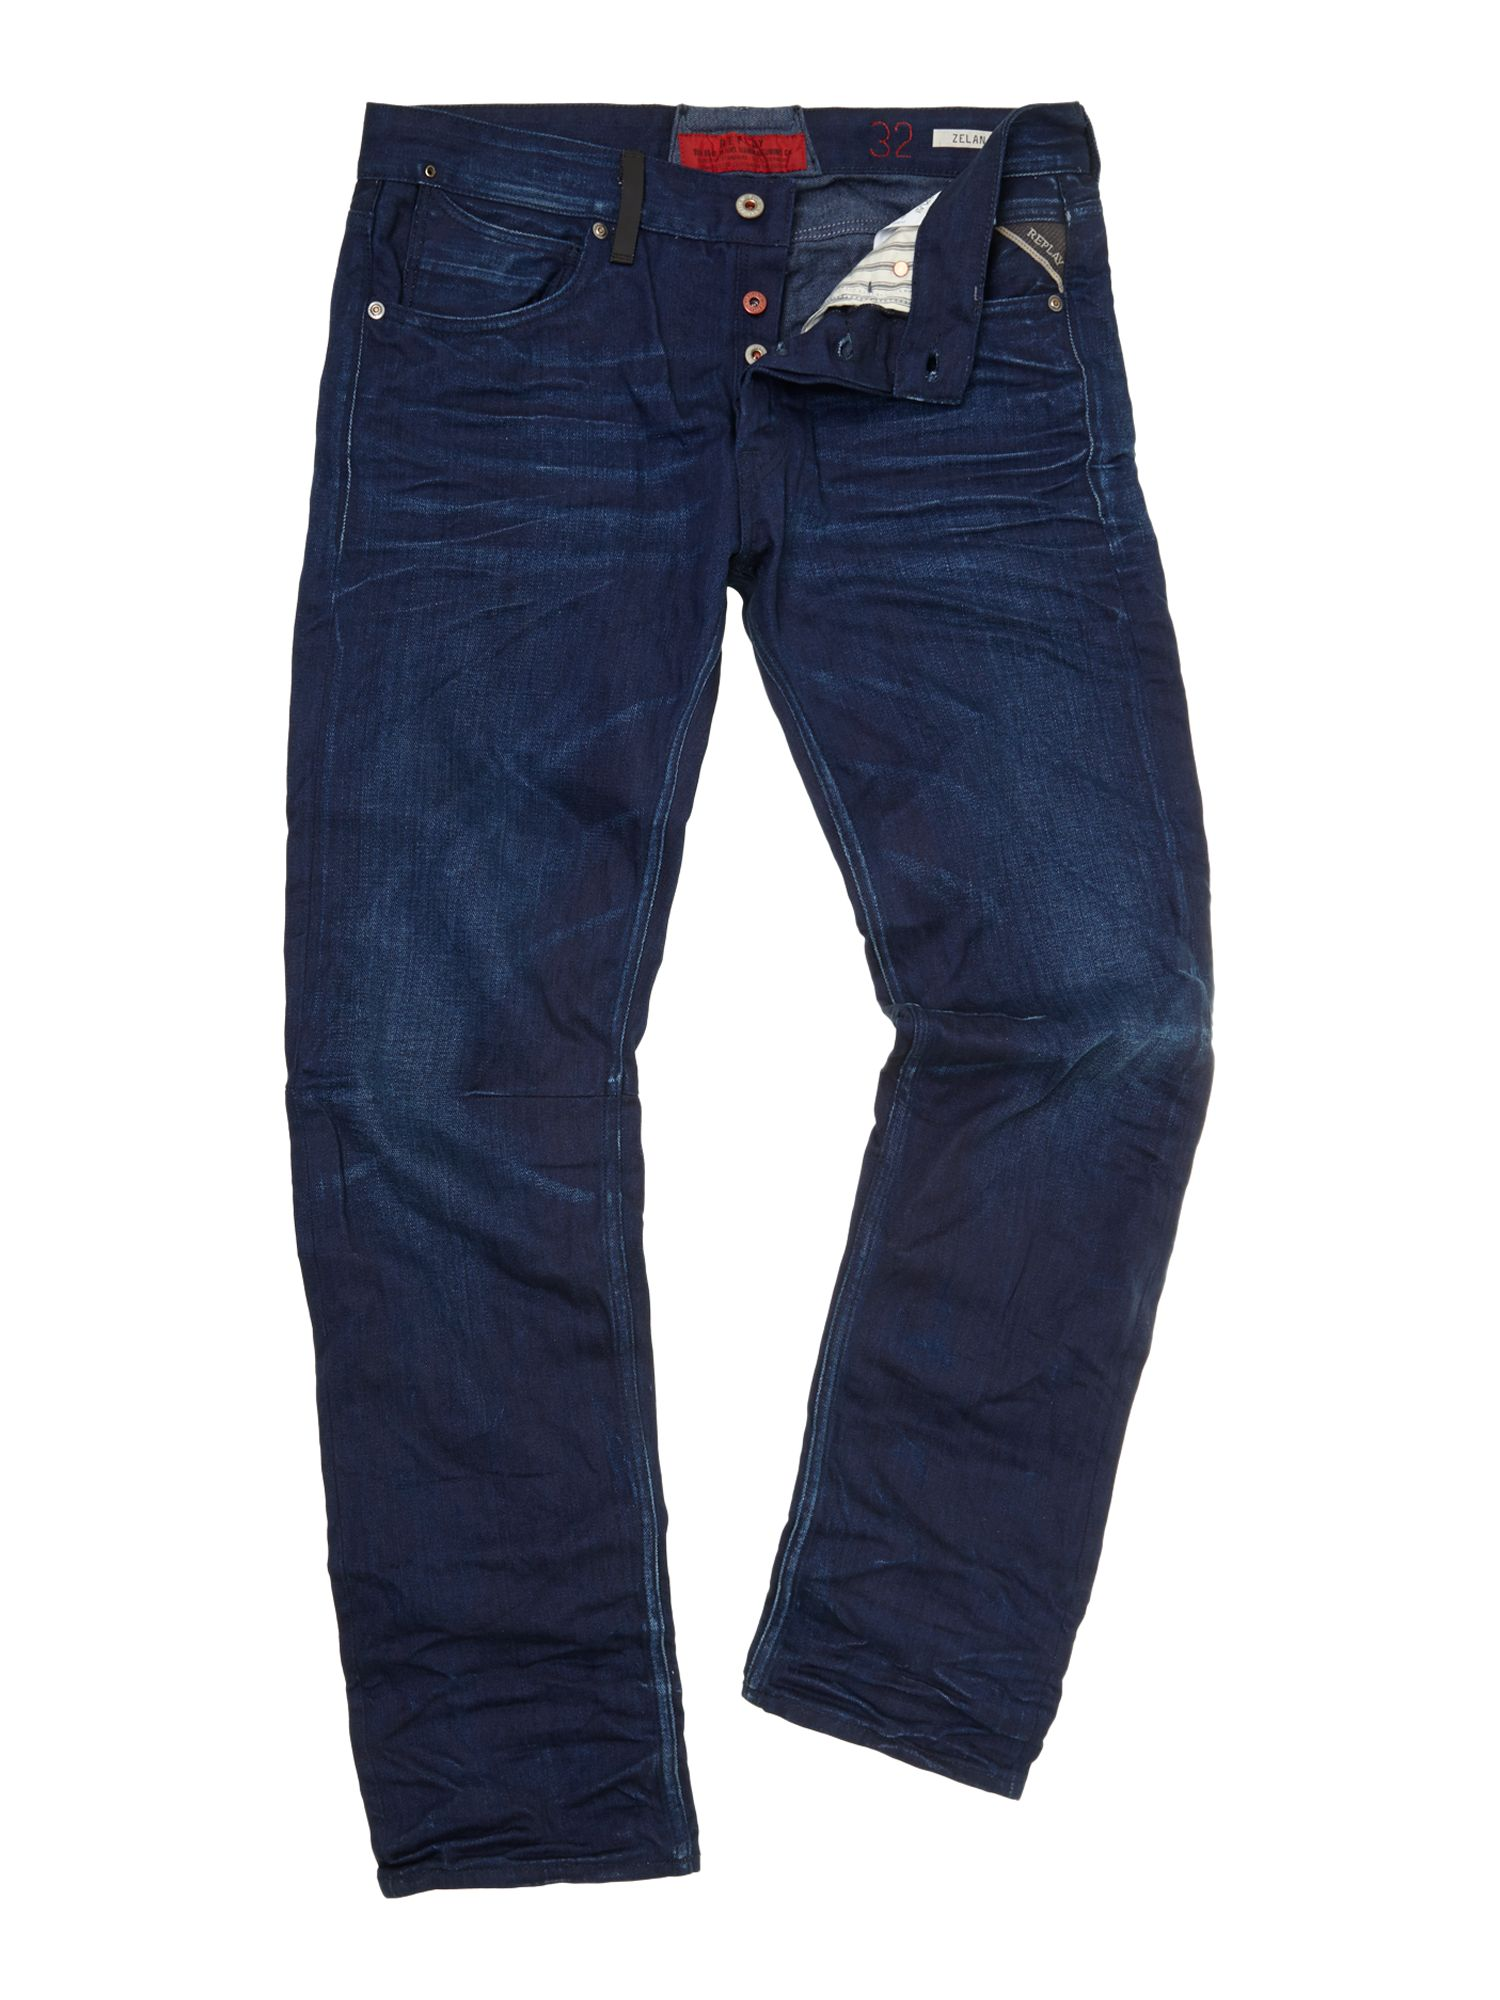 Zelan denim jeans, regular straight fit